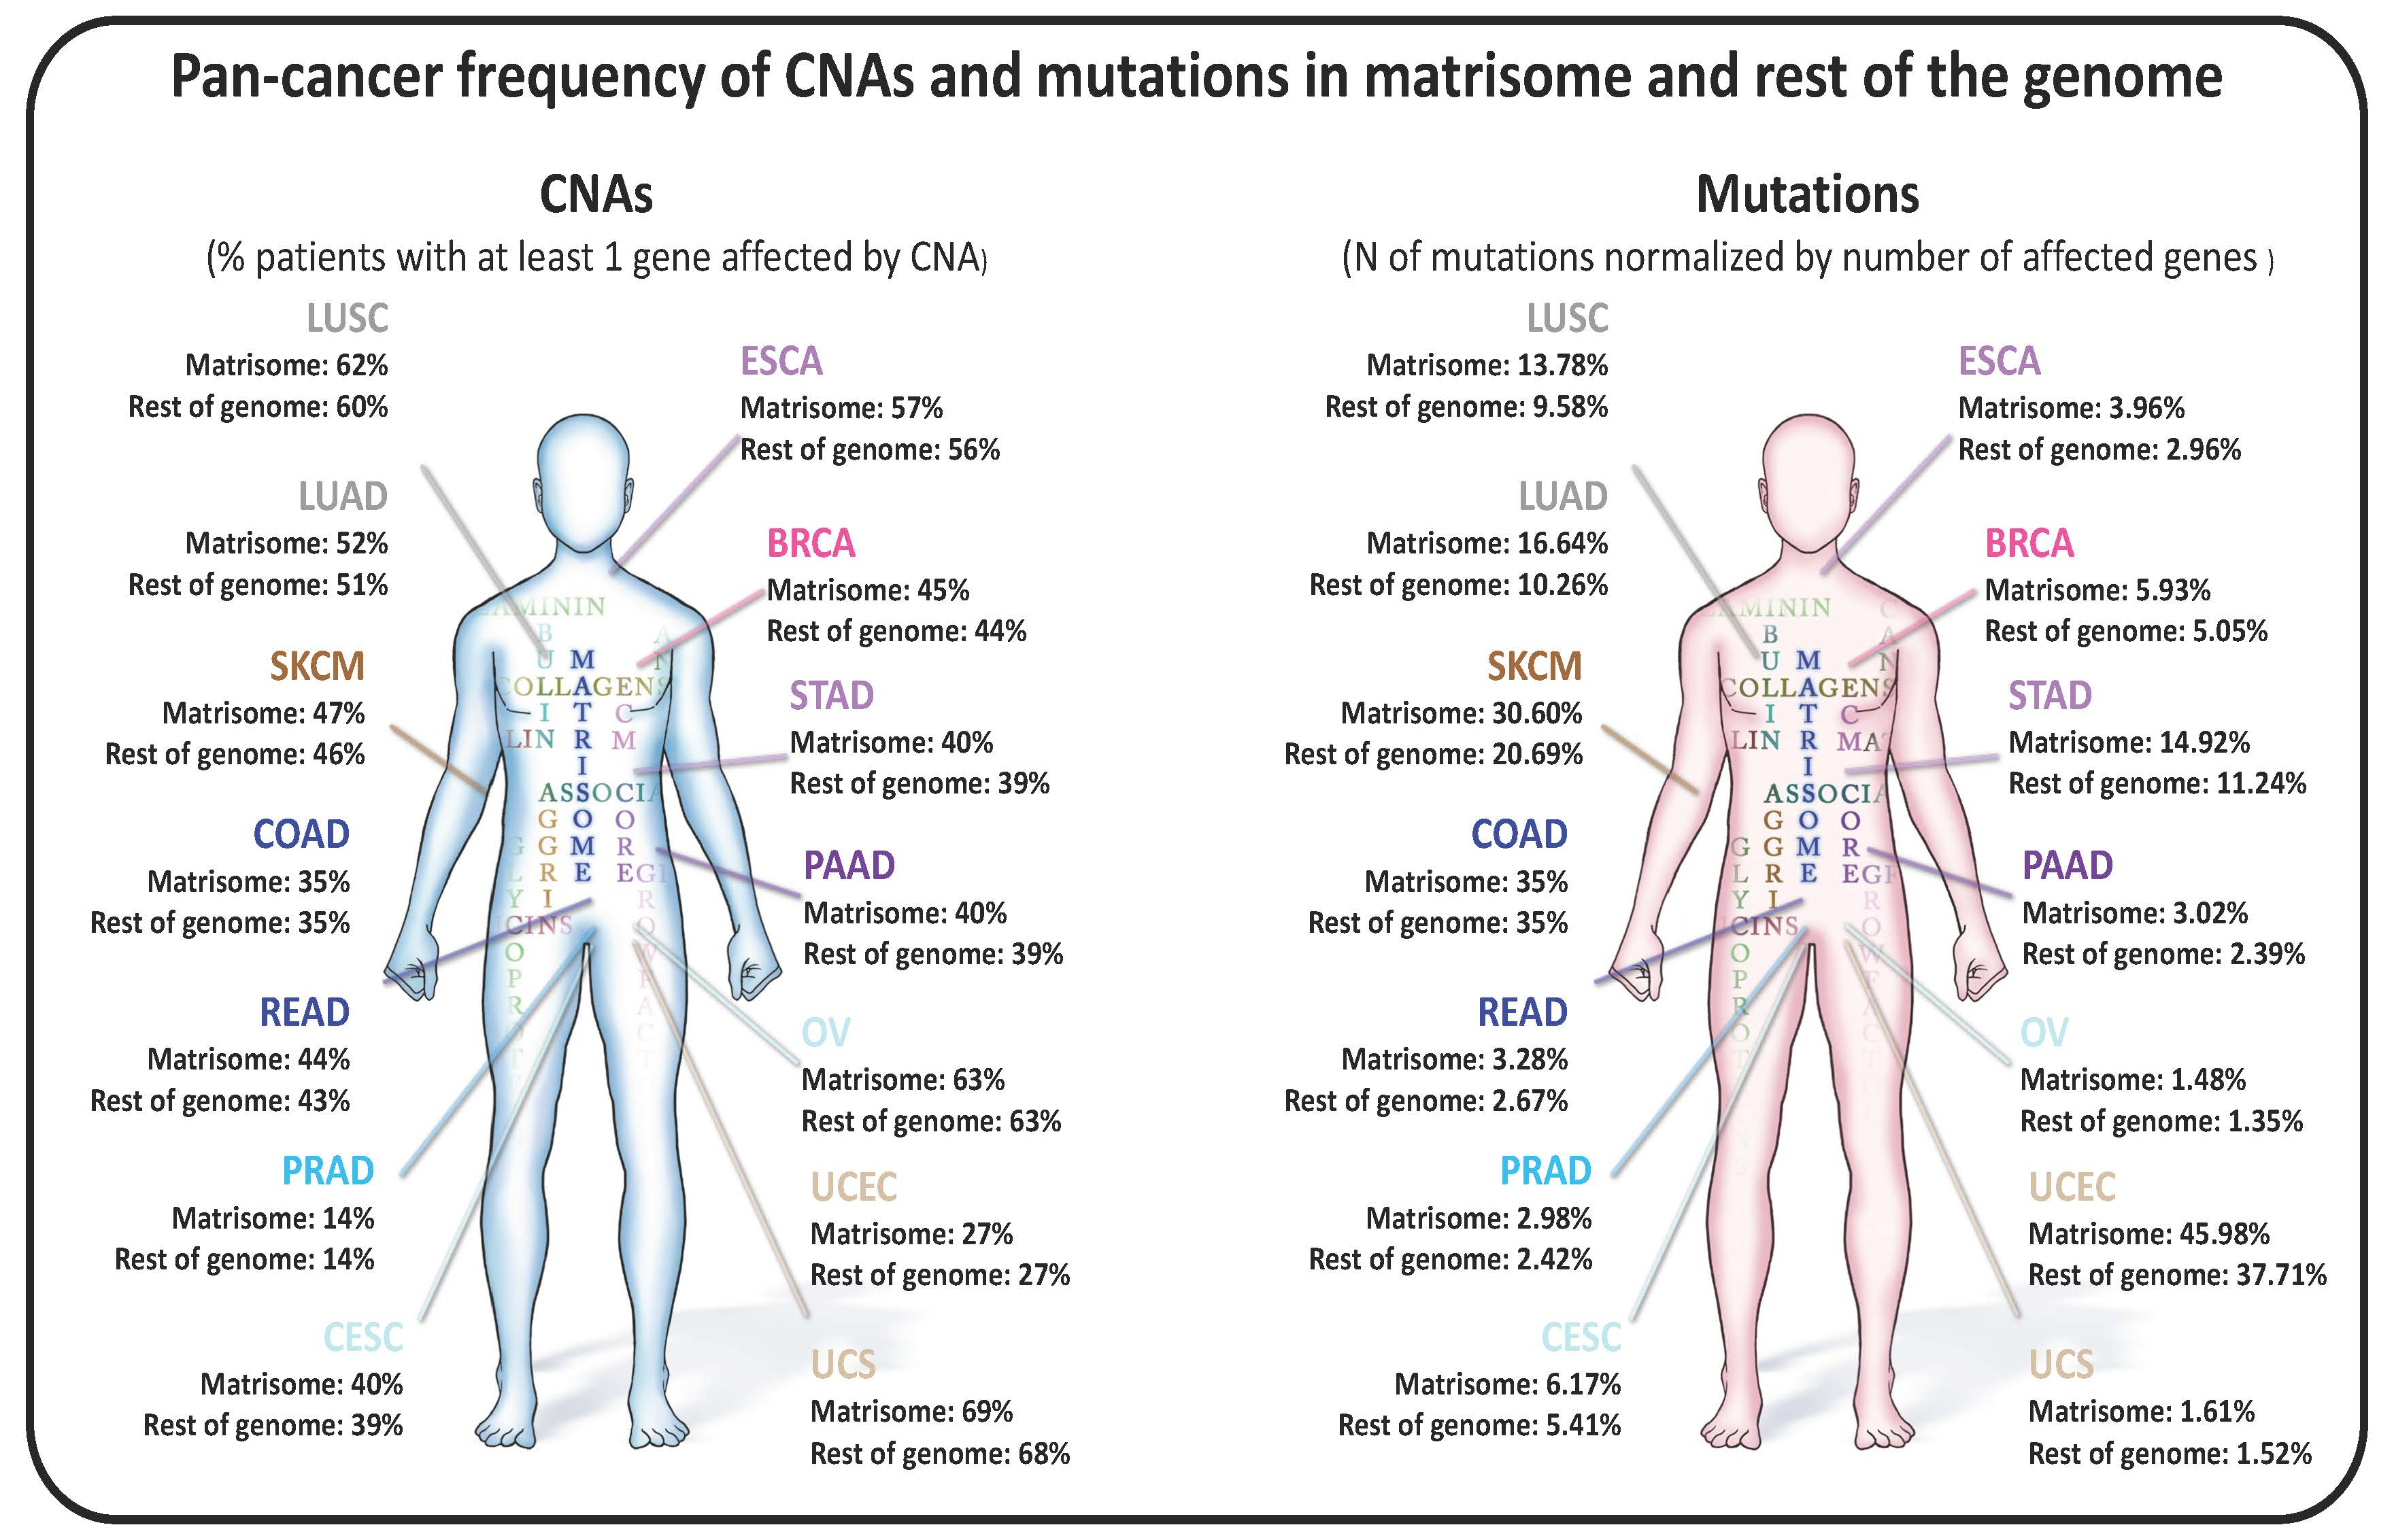 Pan-Cancer Analysis of the Genomic Alterations and Mutations of the Matrisome